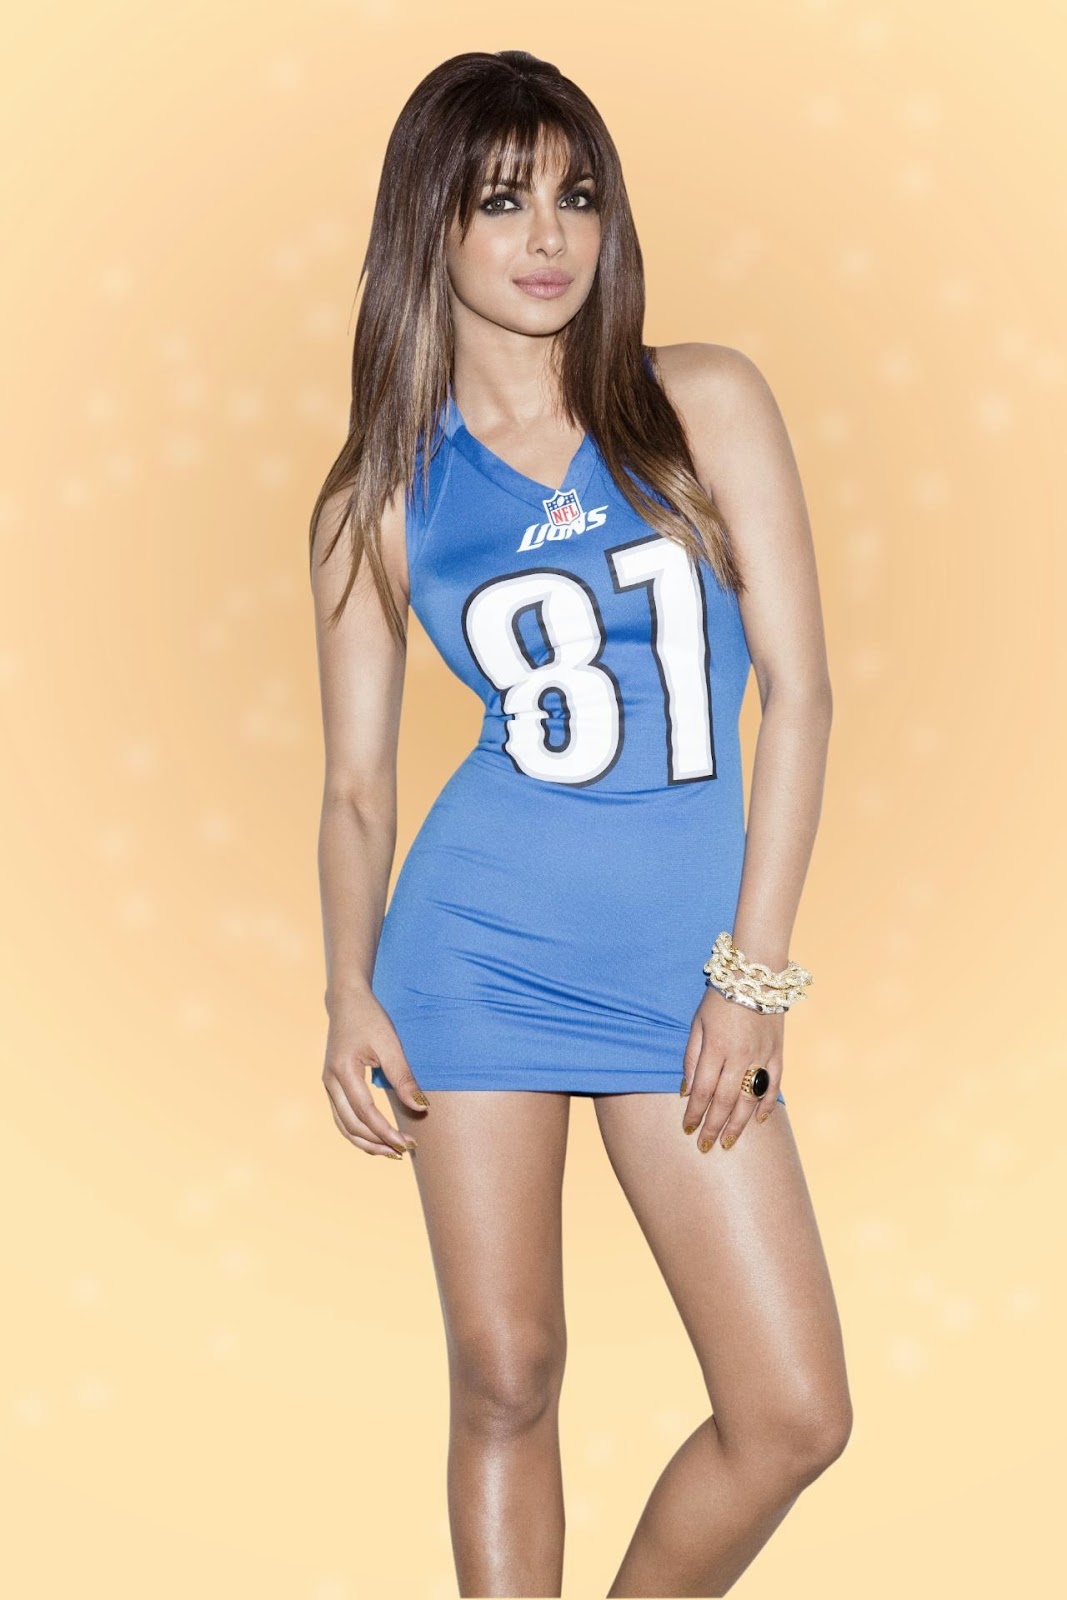 Priyanka Chopra in Mini NFL jersey